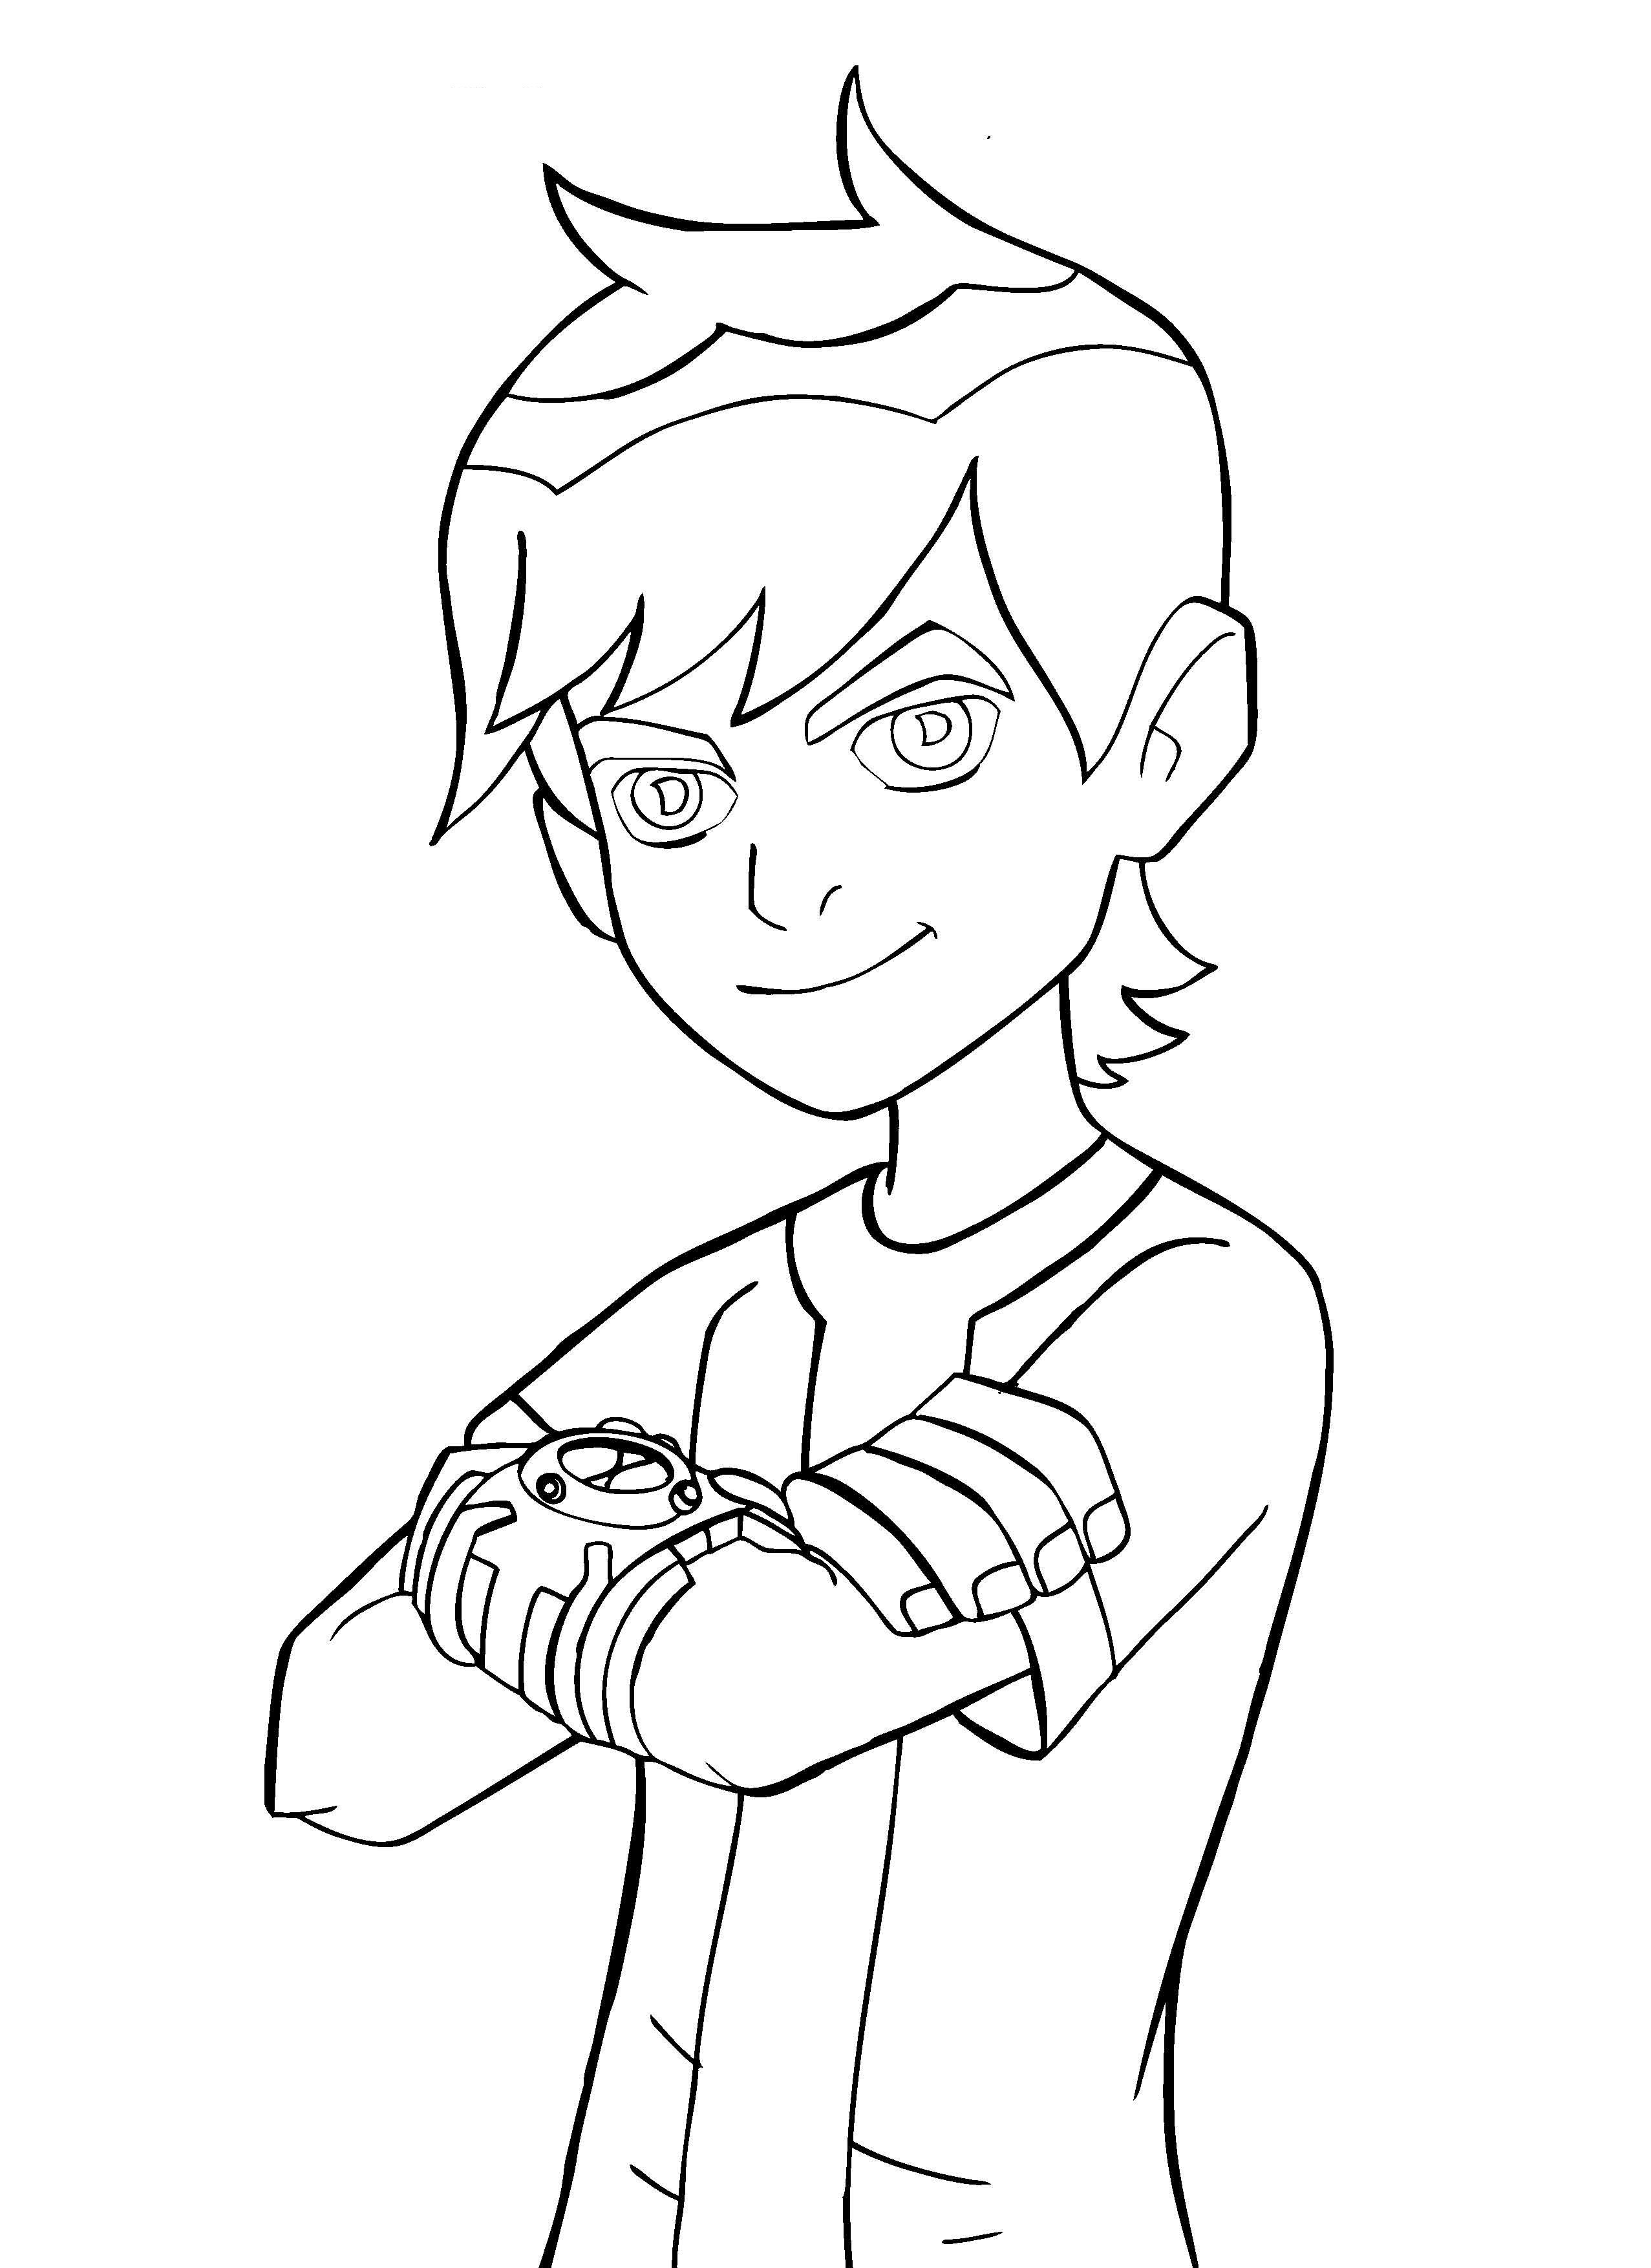 Coloring Sheets For Kids 10  Free Printable Ben 10 Coloring Pages For Kids